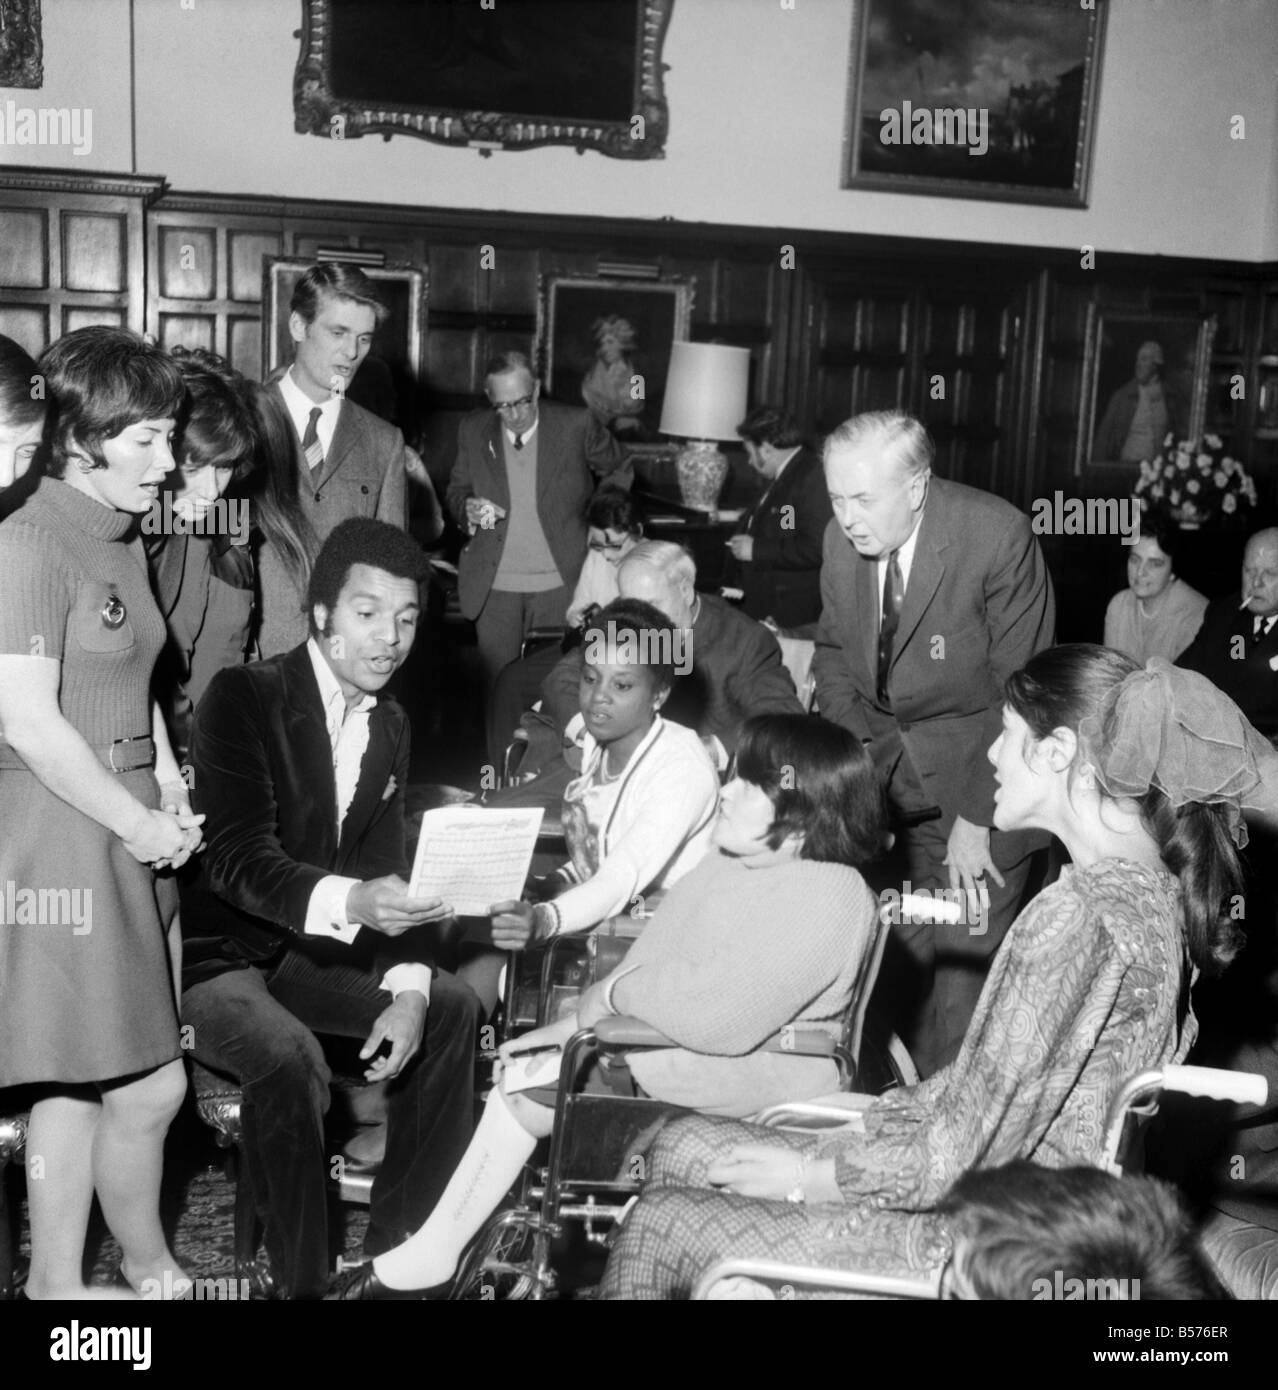 Prime Minister Harold Wilson seen here with his wife Mary atttending a carol concert performed by television celebrities - Stock Image